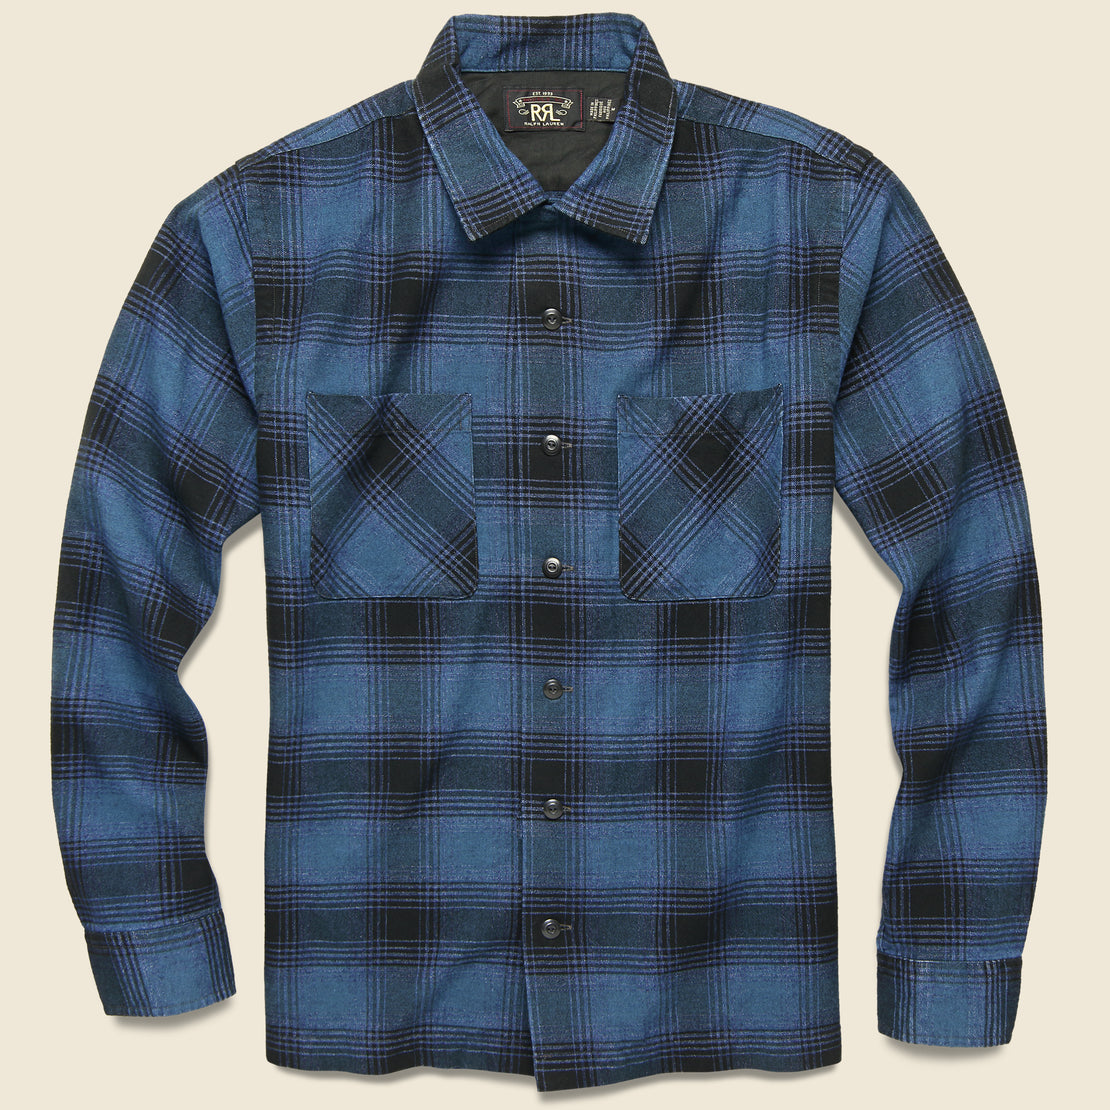 RRL Brushed Ombre Plaid Towns Camp Shirt - Indigo/Black